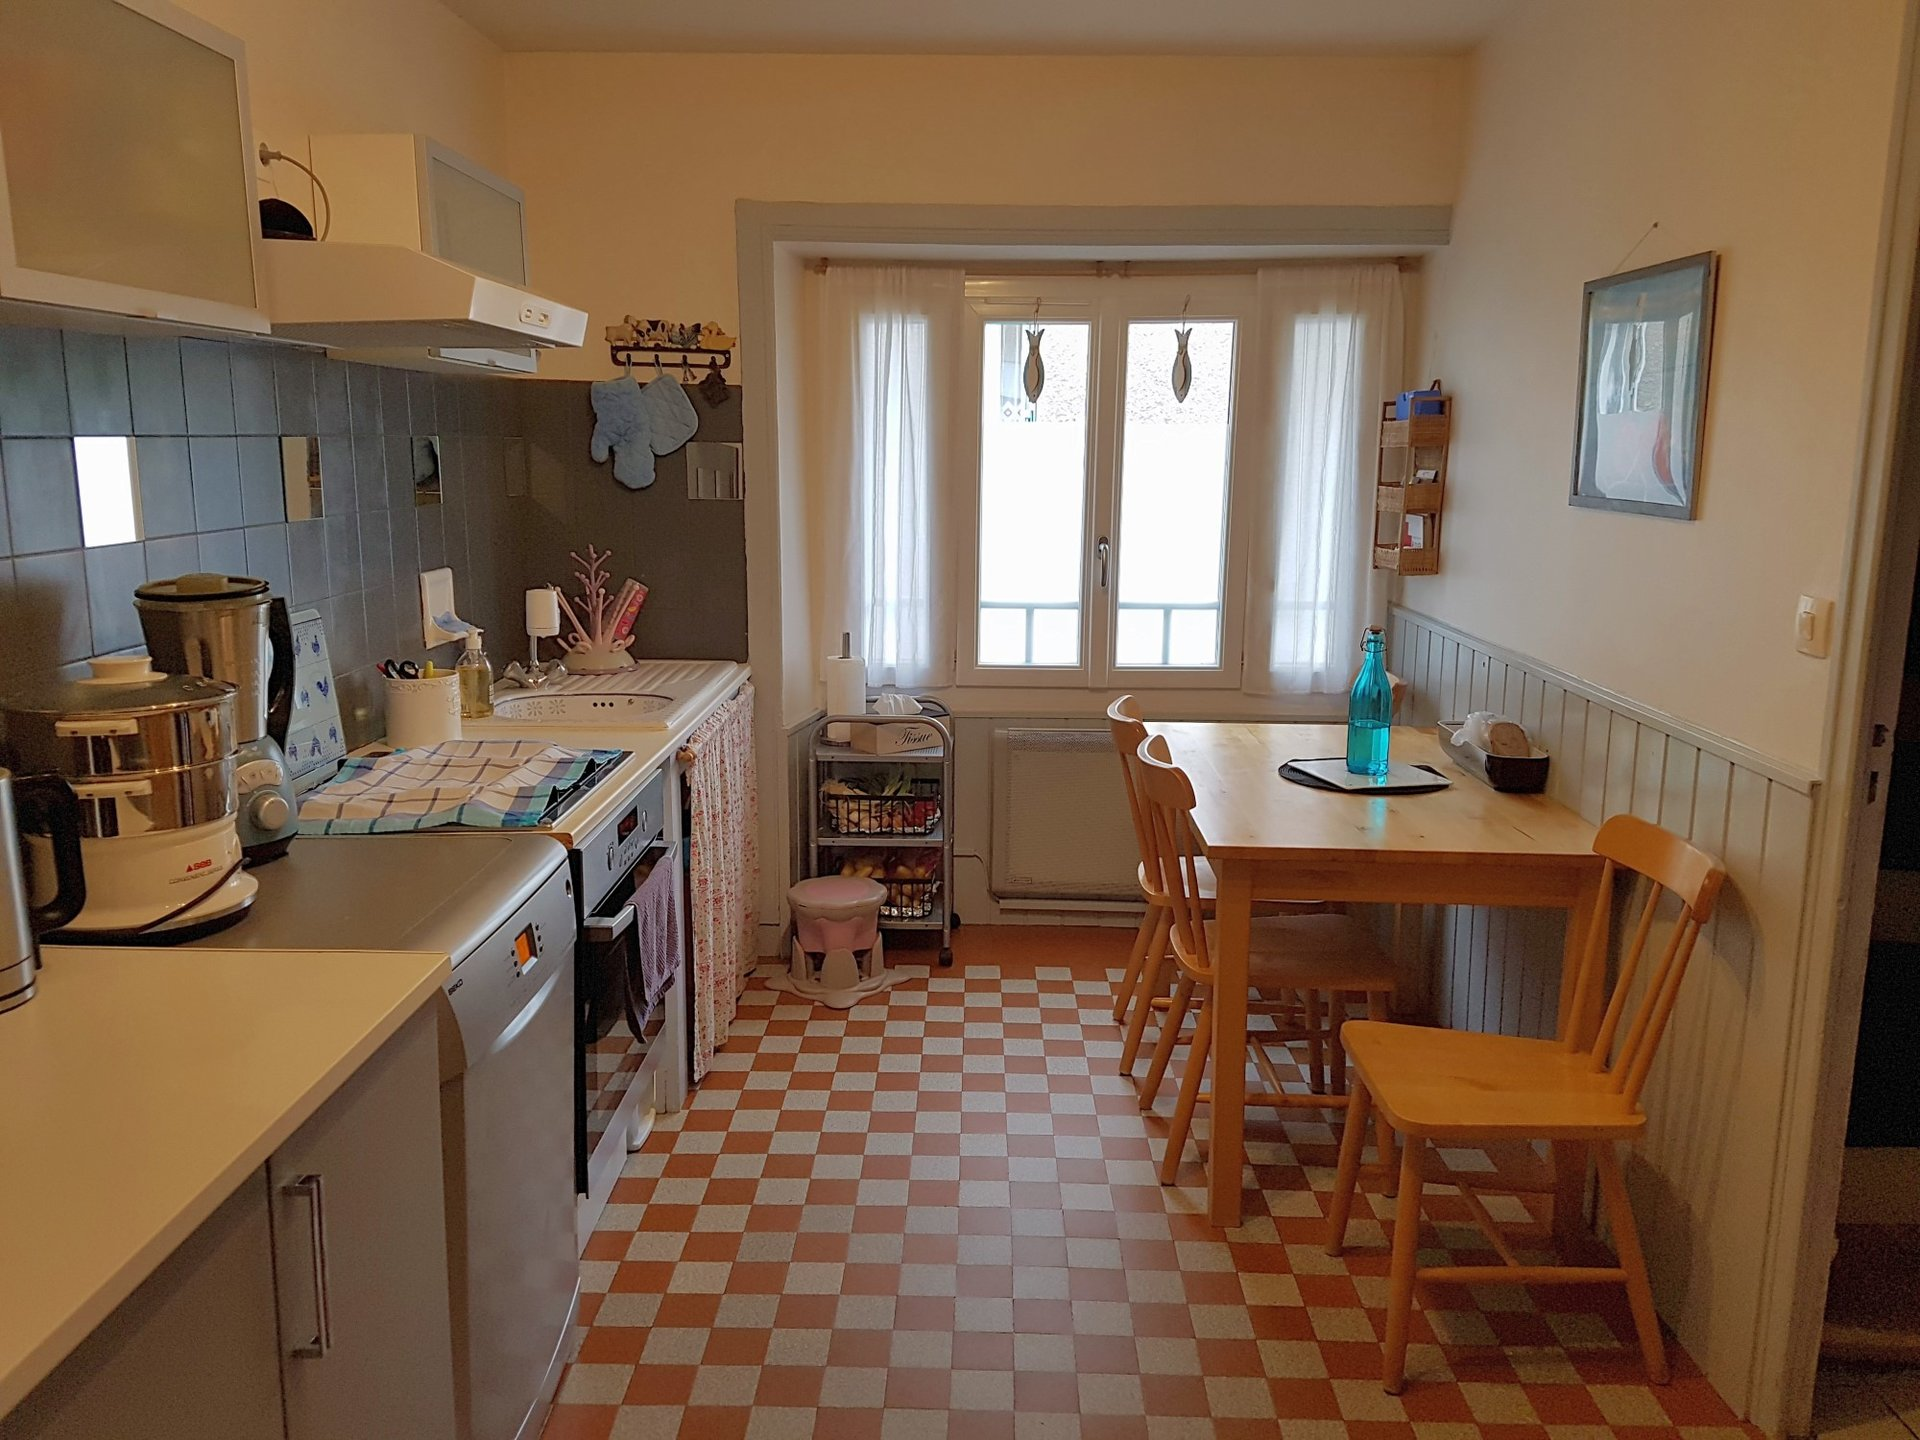 La Trimouille, Vienne 86: charming village house